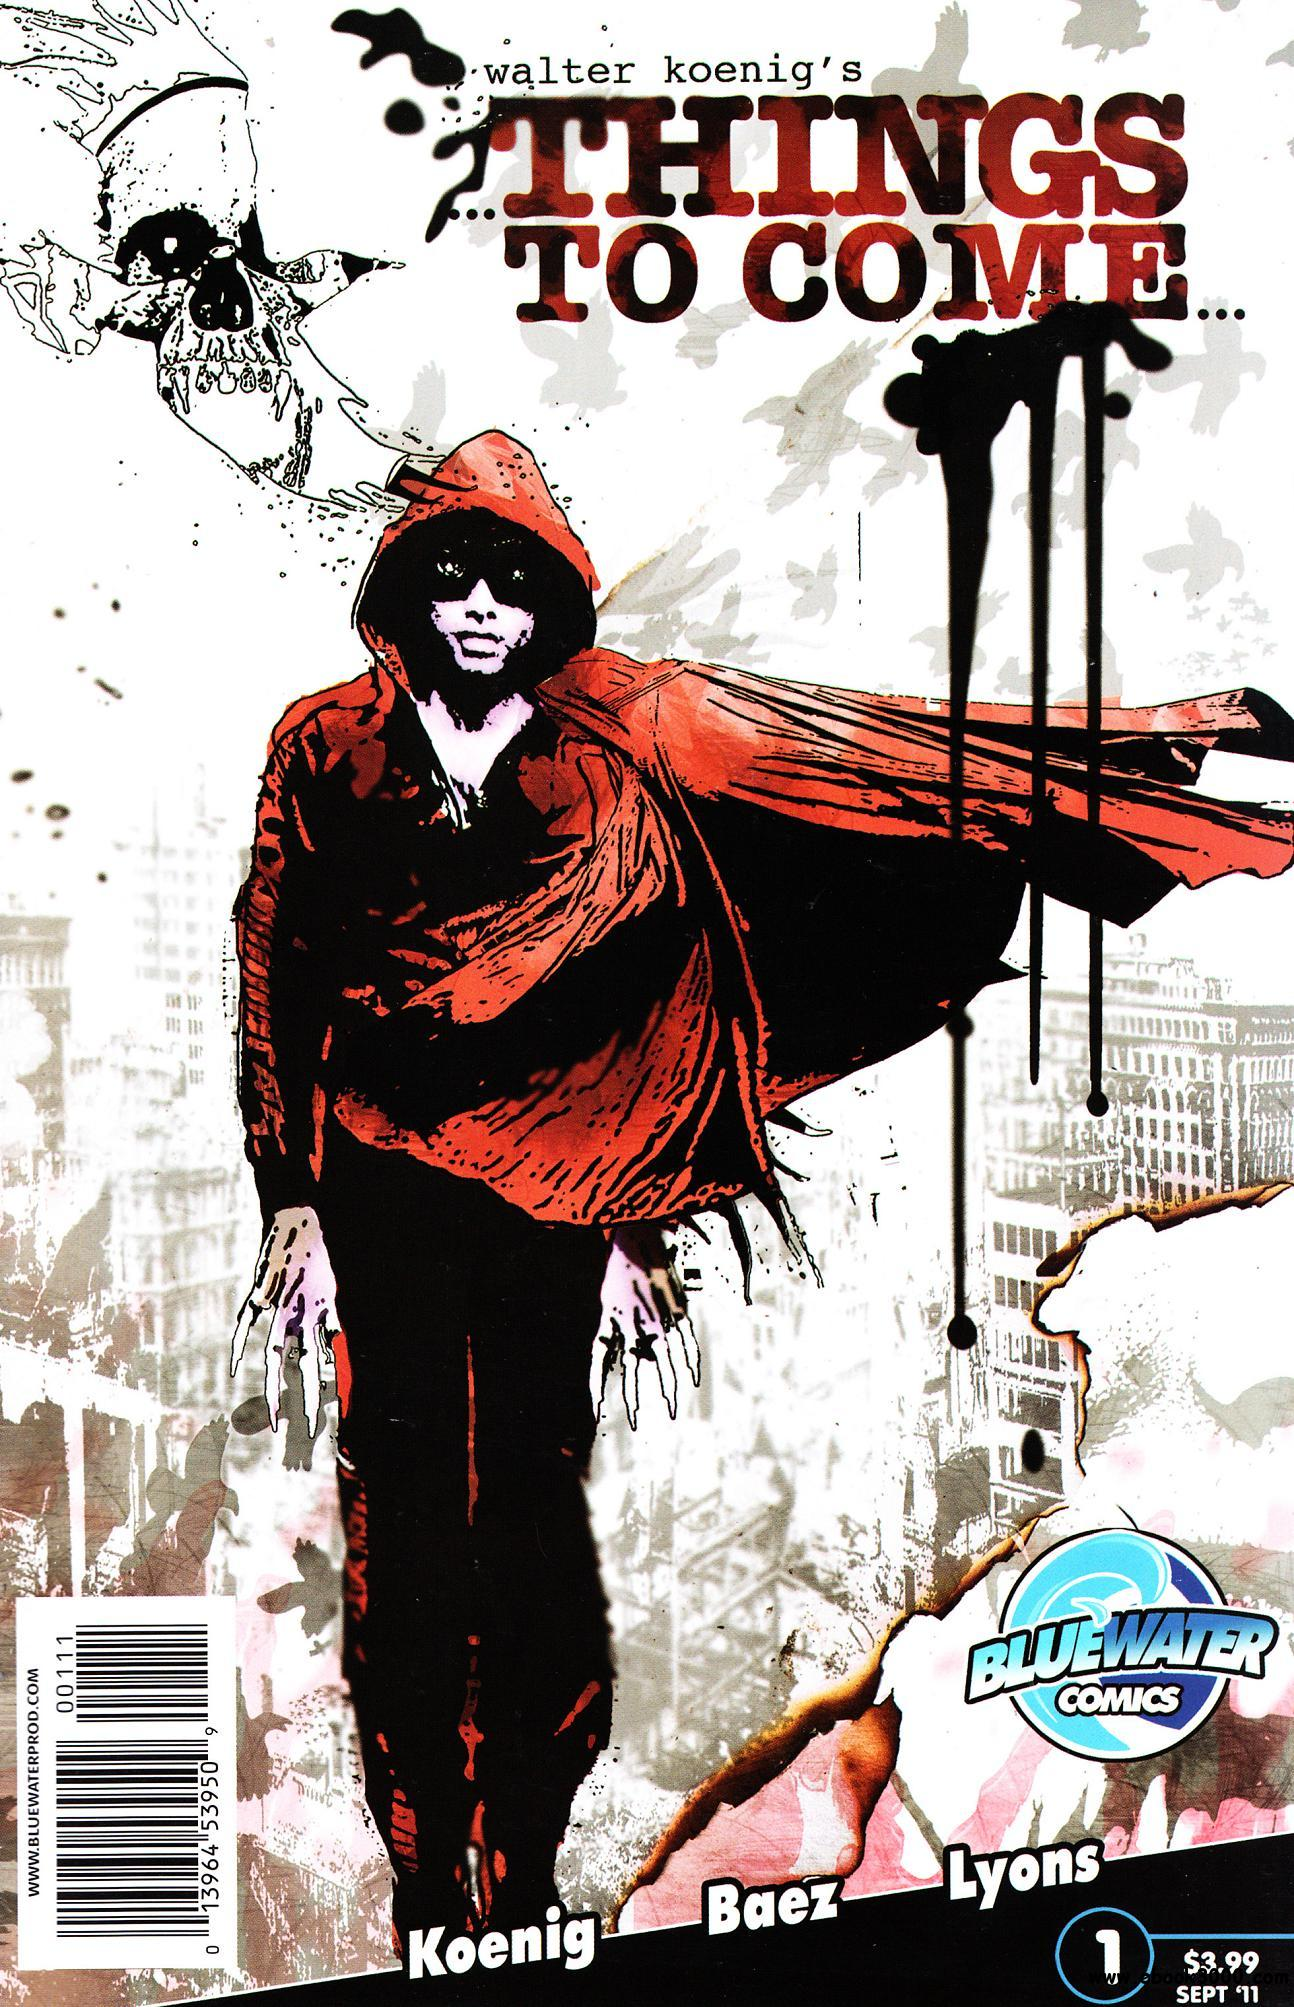 Walter Koenig's Things To Come #1 (2011) free download